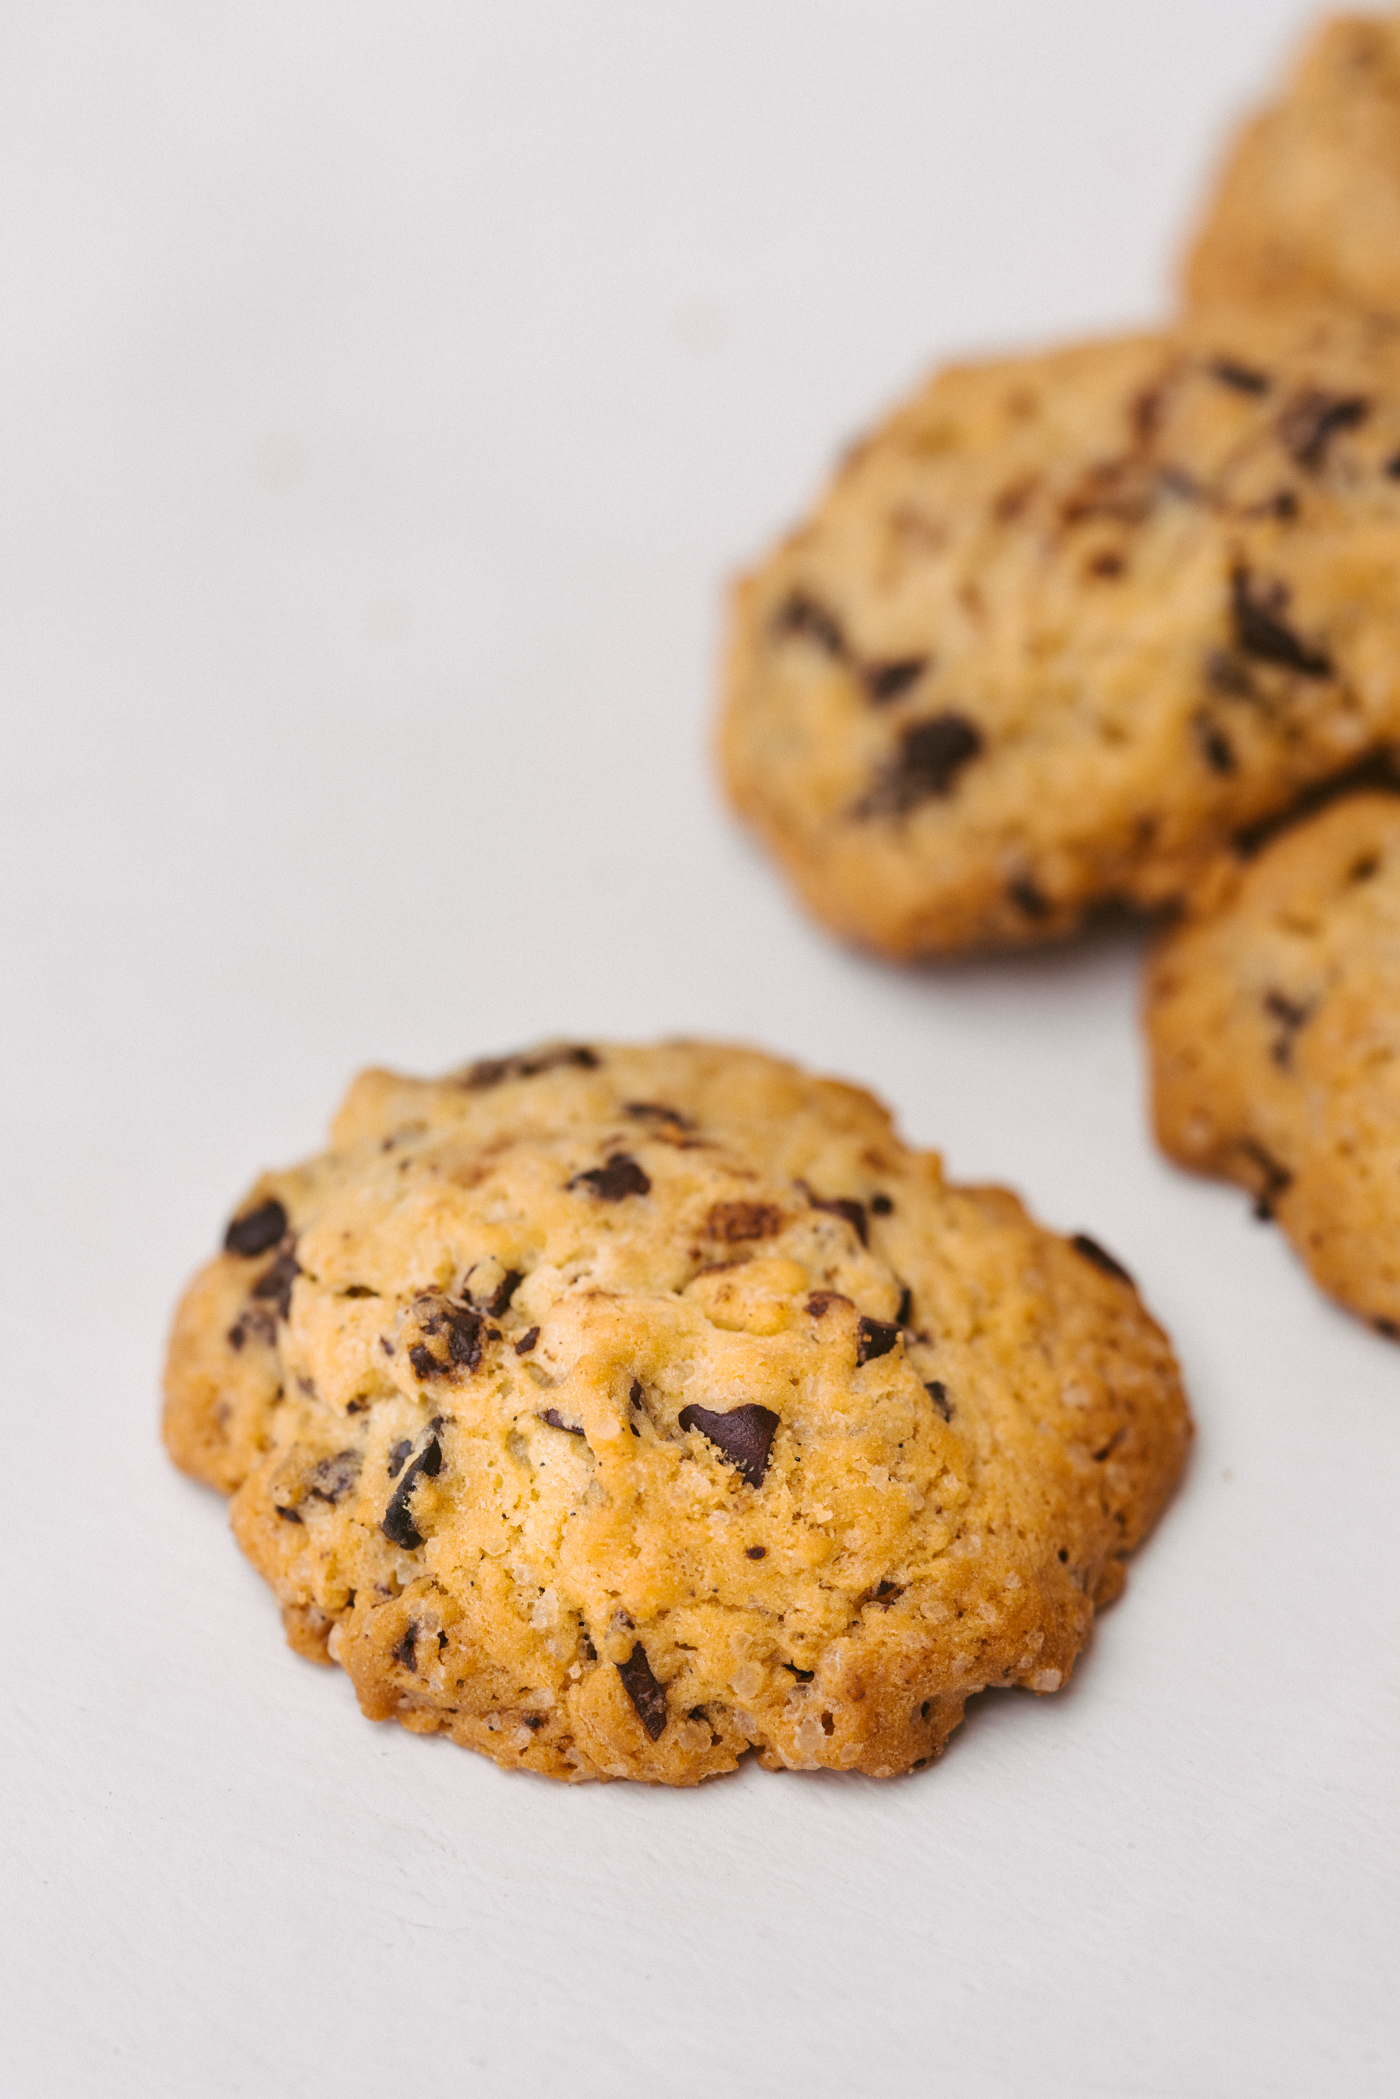 all_butter_cacao_nib_chocolate_chip_cookies-9.jpg